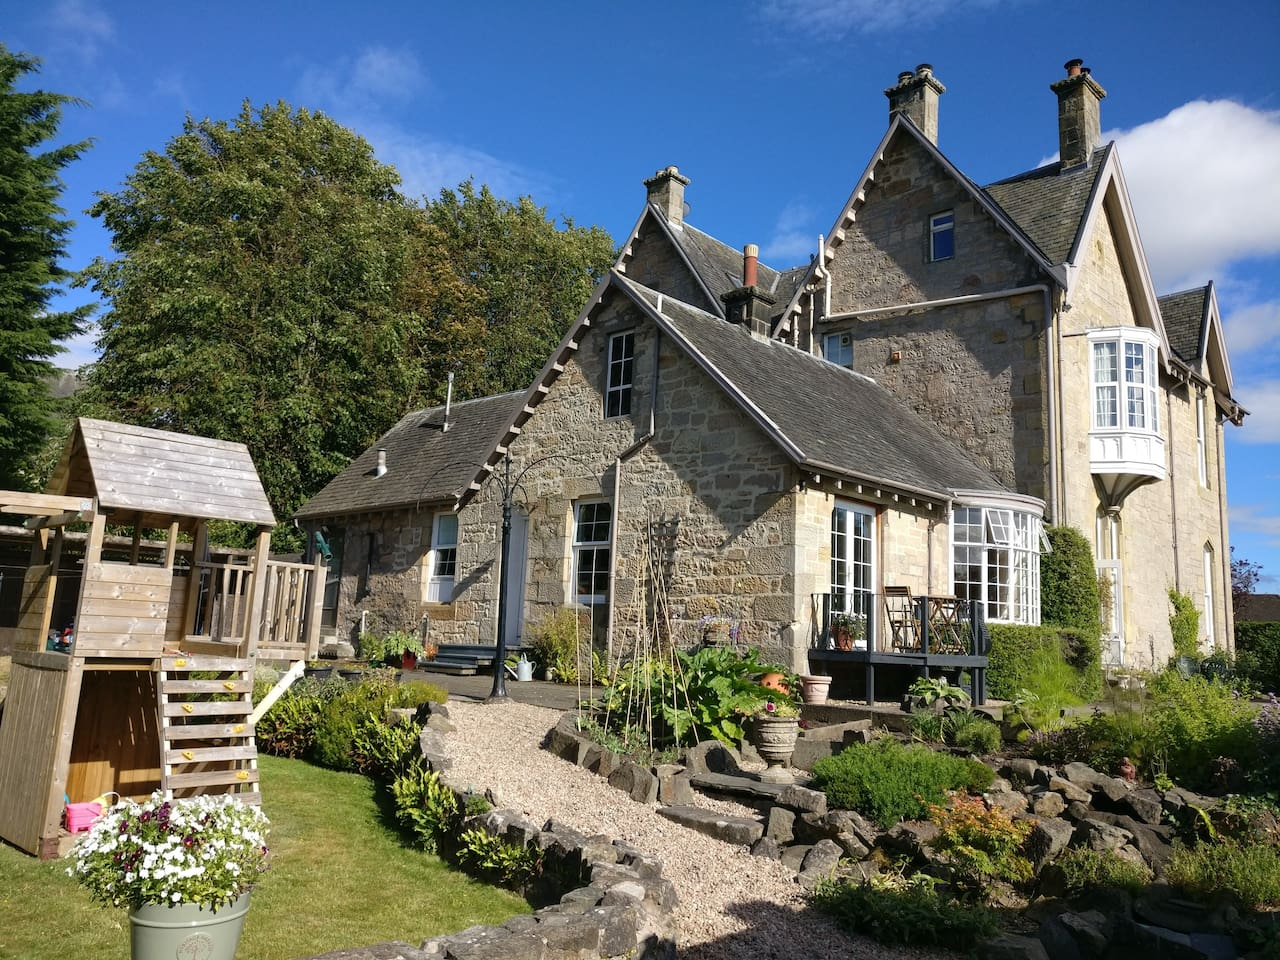 Lovely self contained cottage attached to 19th century house in the city of Stirling